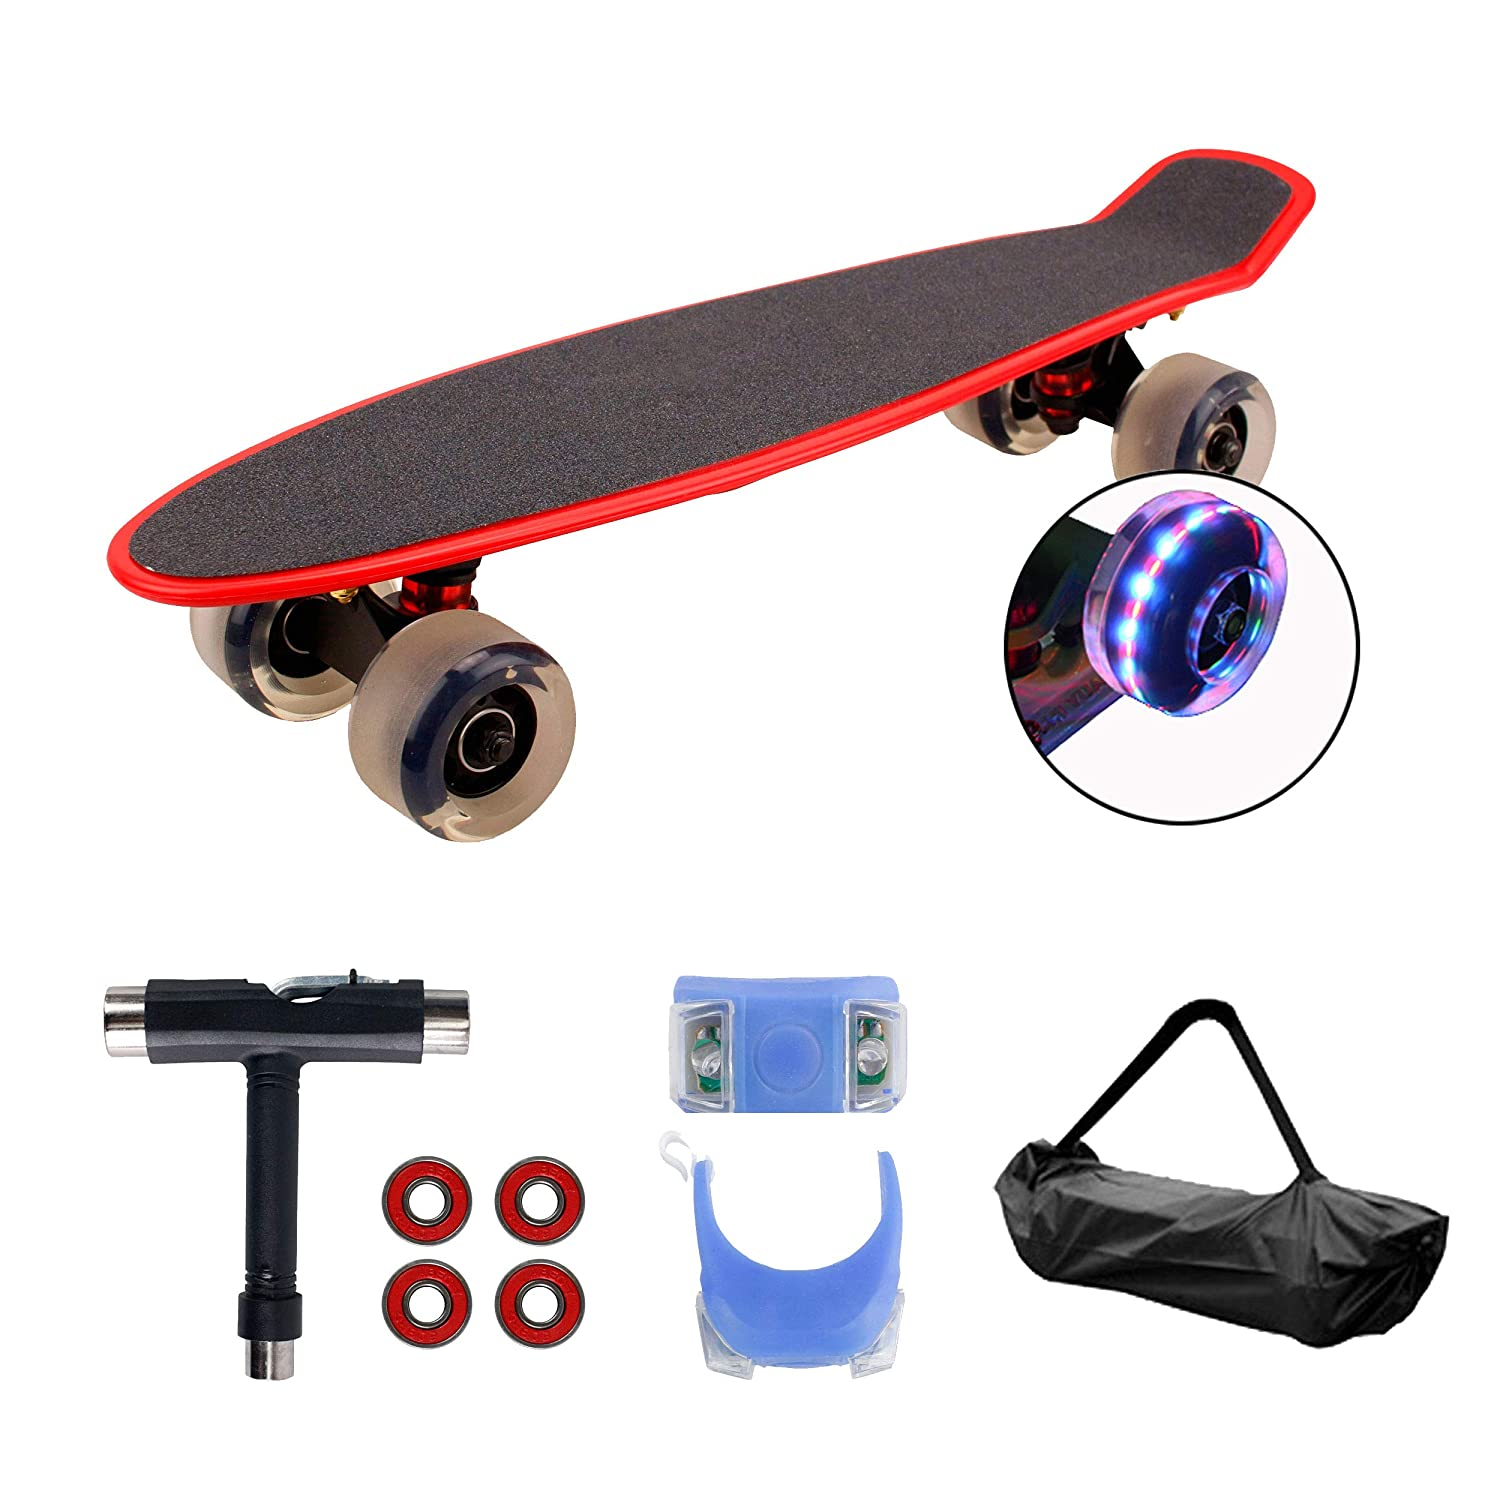 Geelife 22 Complete Mini Cruiser Skateboard for Beginners Youths Teens Girls Boys with LED Wheels